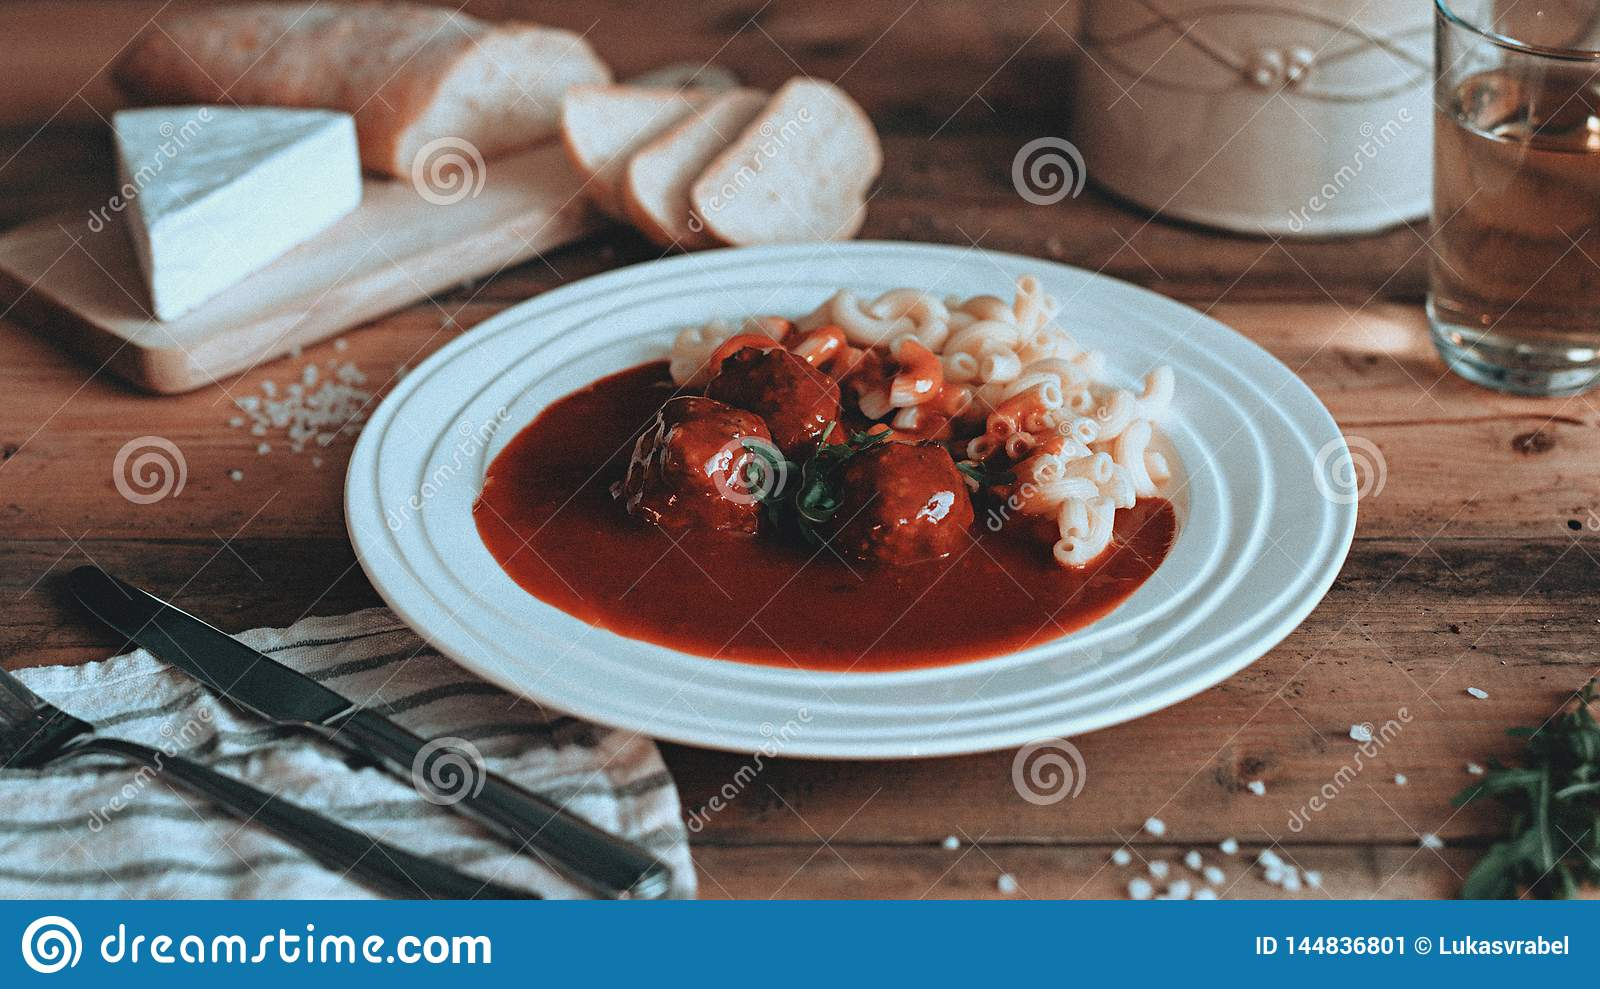 Food styling tomato sauce with pasta on the wooden planks